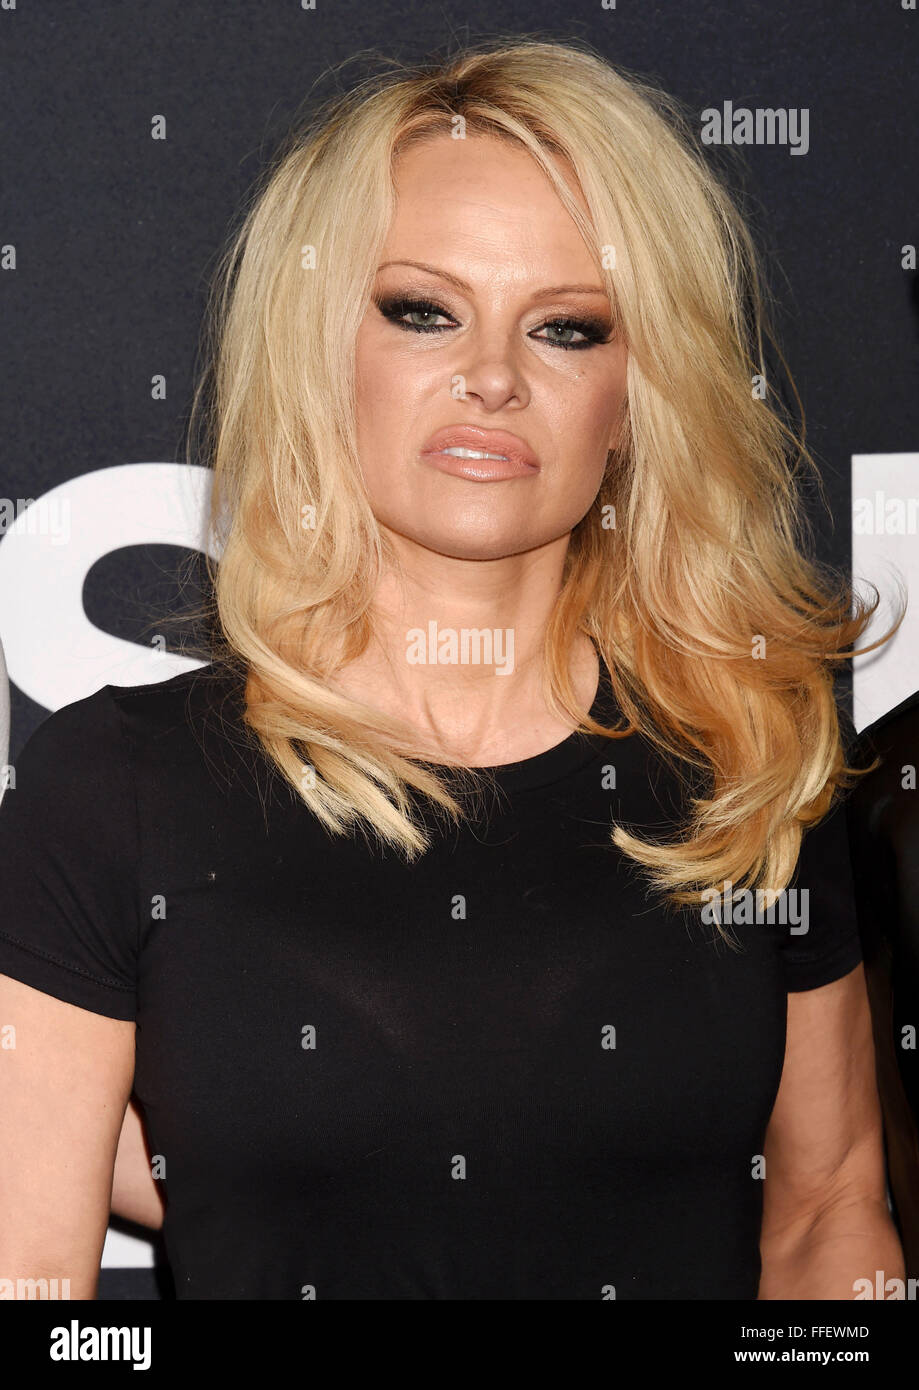 Pamela Anderson Us Film Actress In February 2016. Photo Jeffrey ... Pamela Anderson